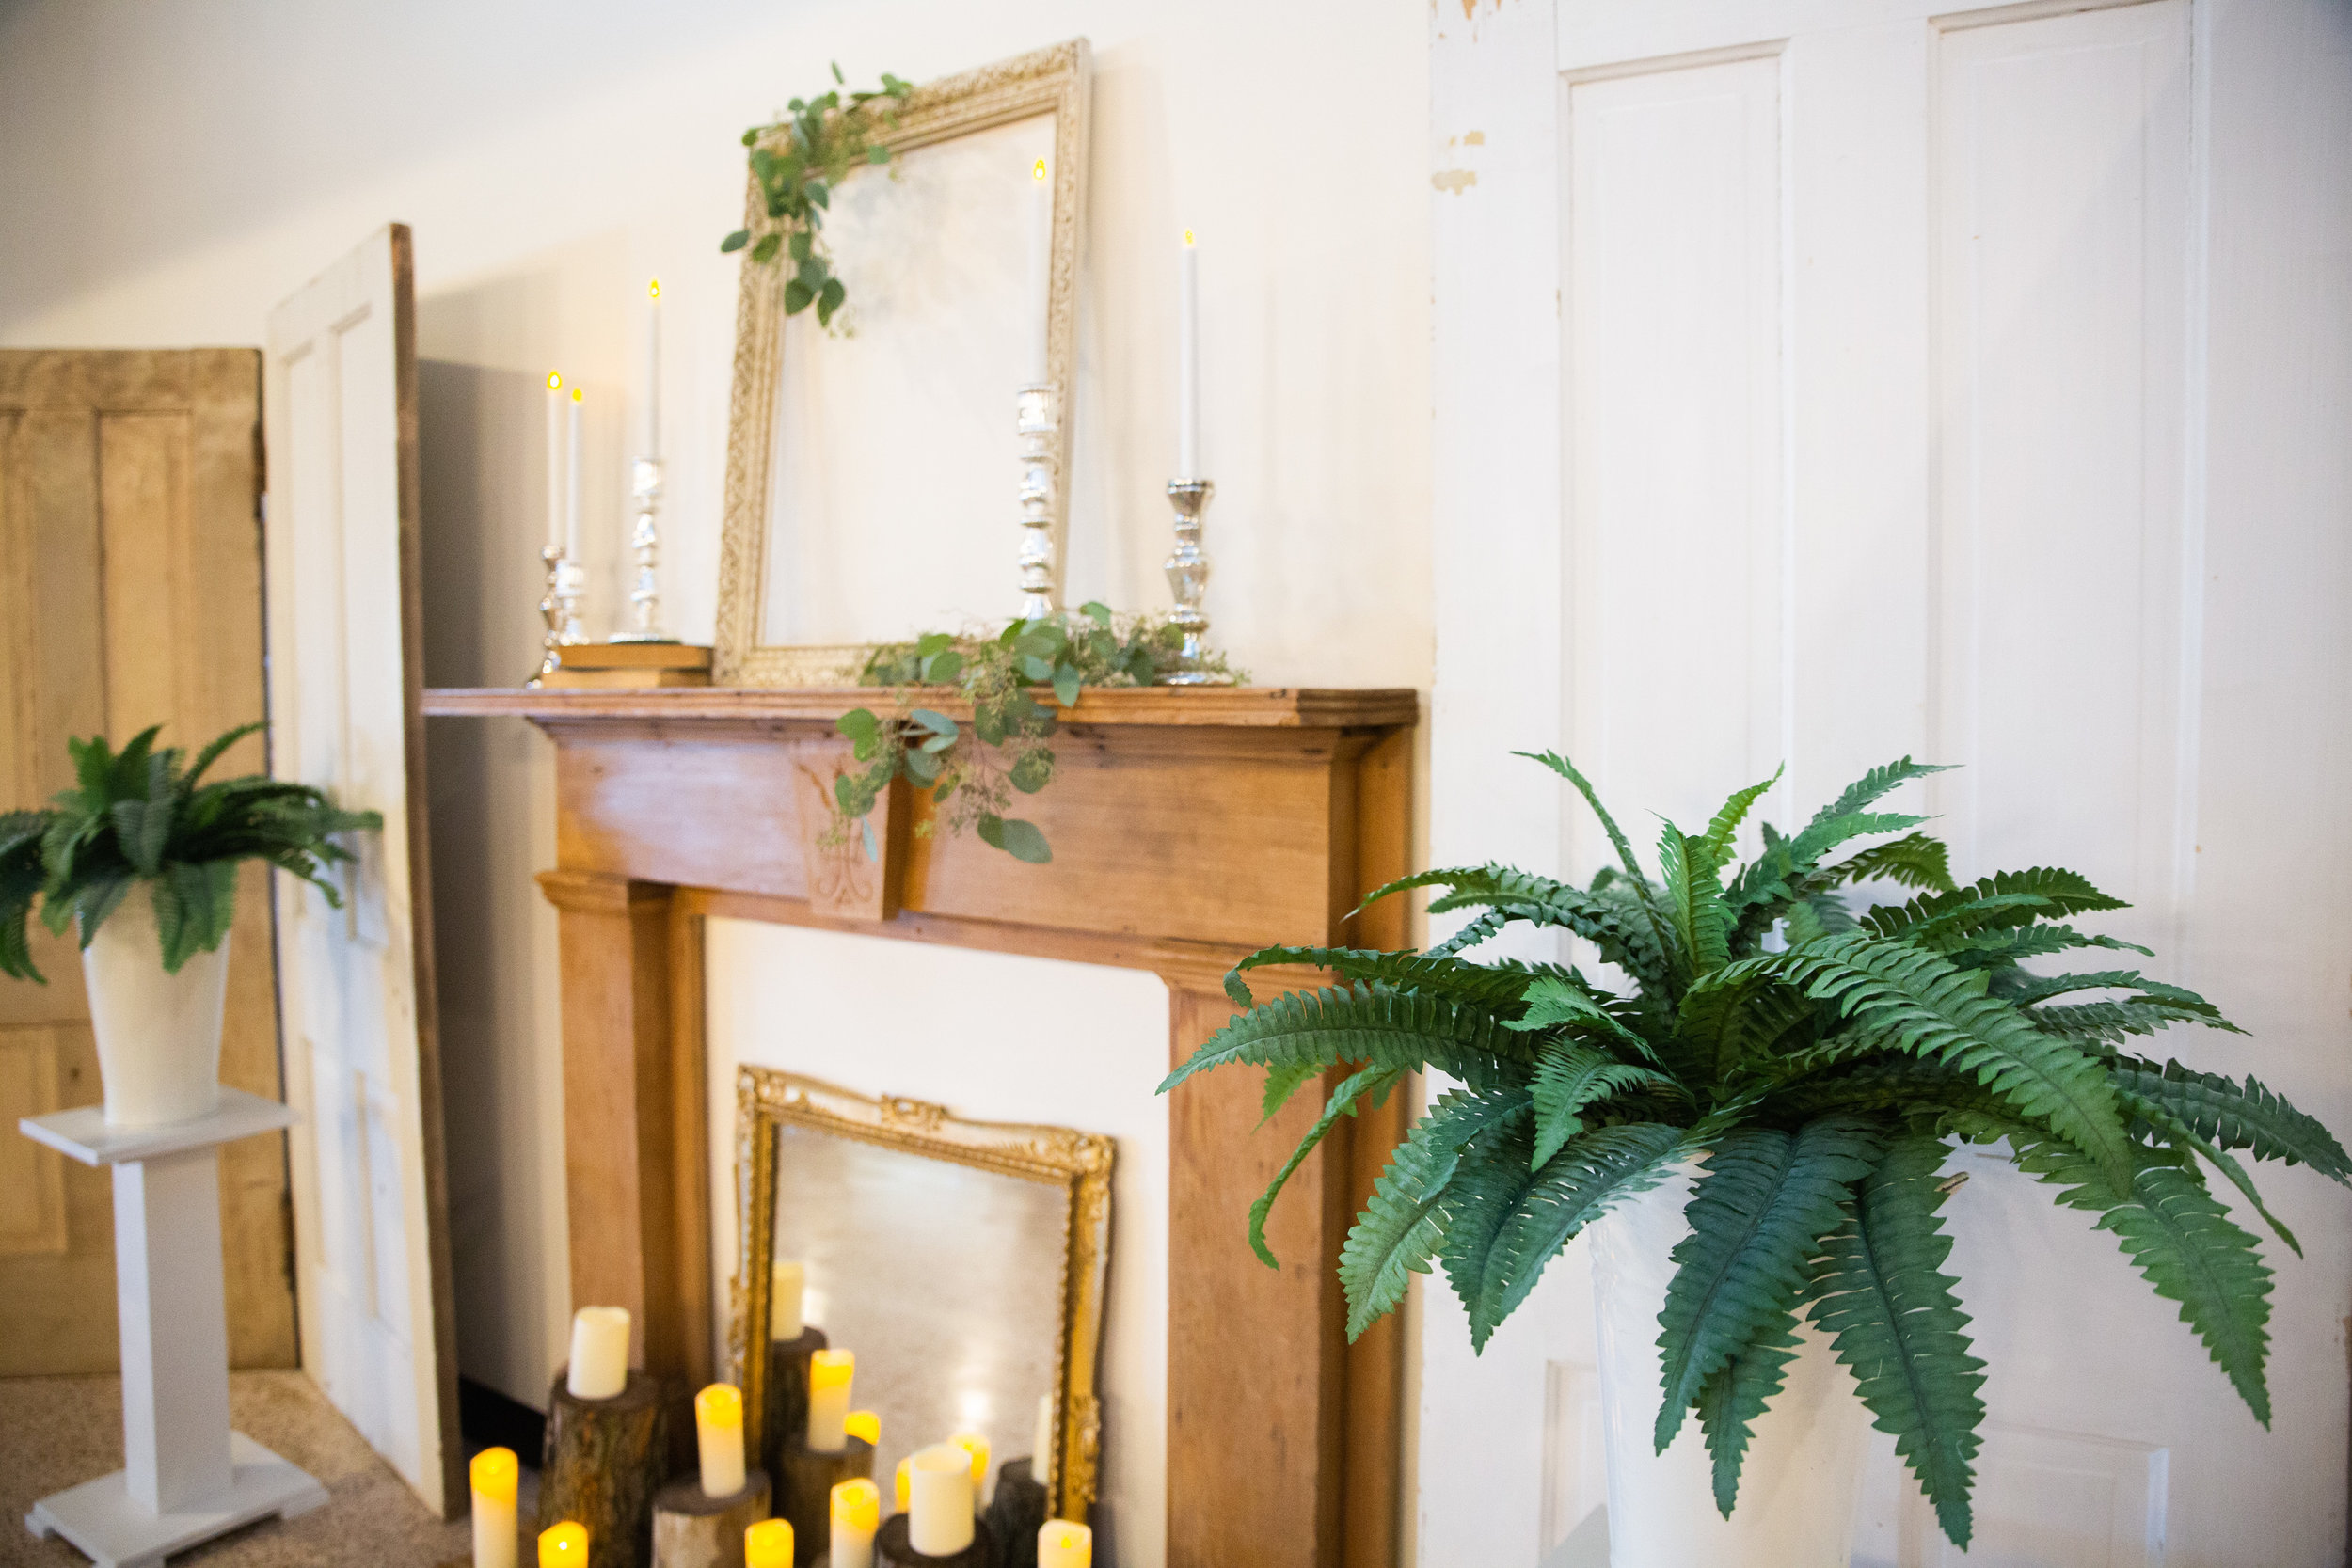 styling for weddings parties and events in Des Moines Iowa // Windsor Heights, Johnston, Waukee, Grimes